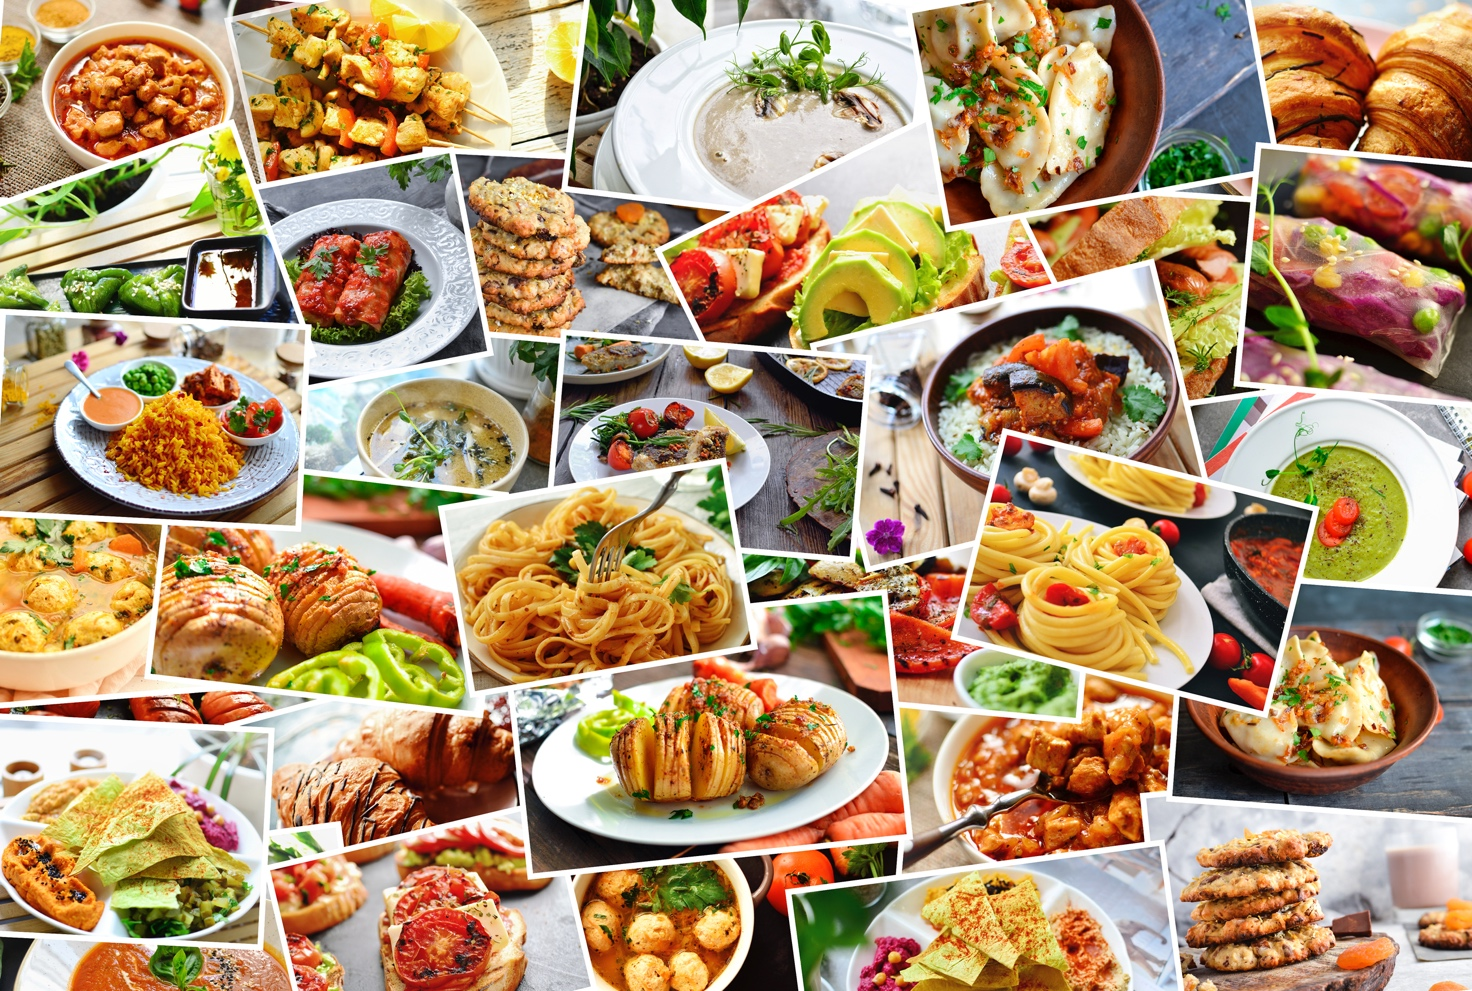 How To Explore Different Cuisines While at Home